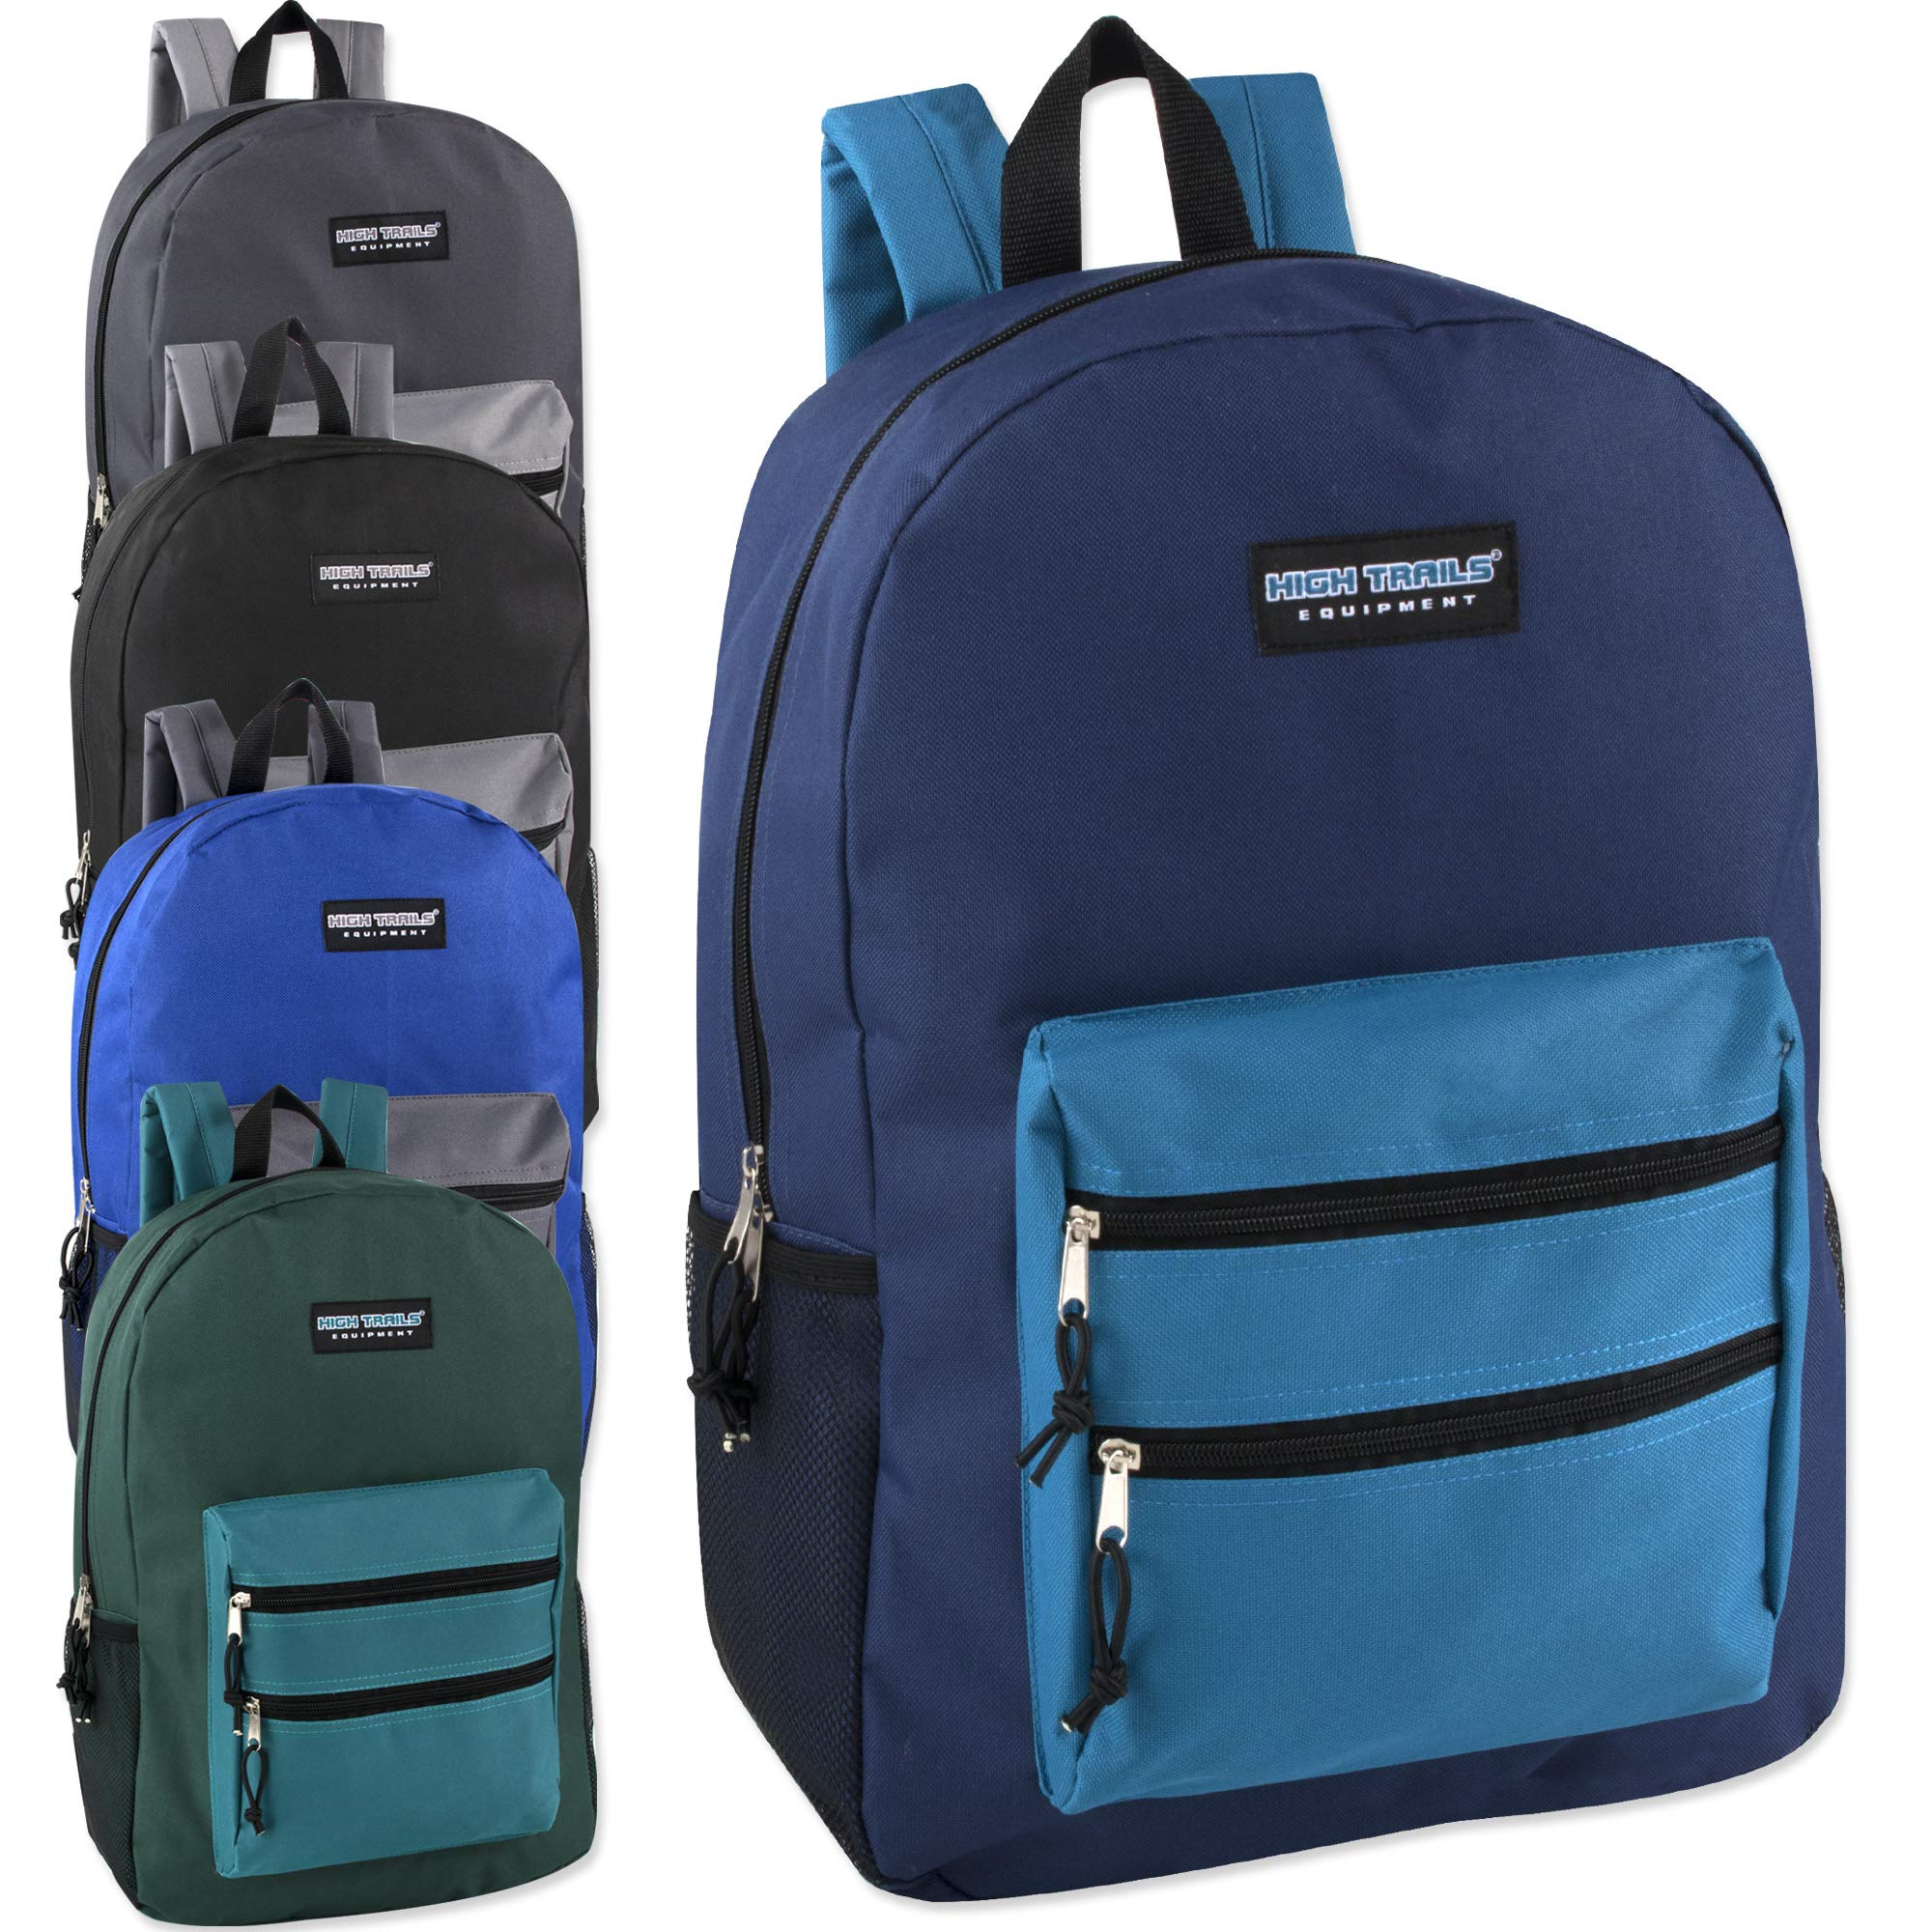 Wholesale High Trails 19 Inch Double Zip Backpack With Two Side Mesh Pockets (Boys 5 Pack Assorted) by High Trails